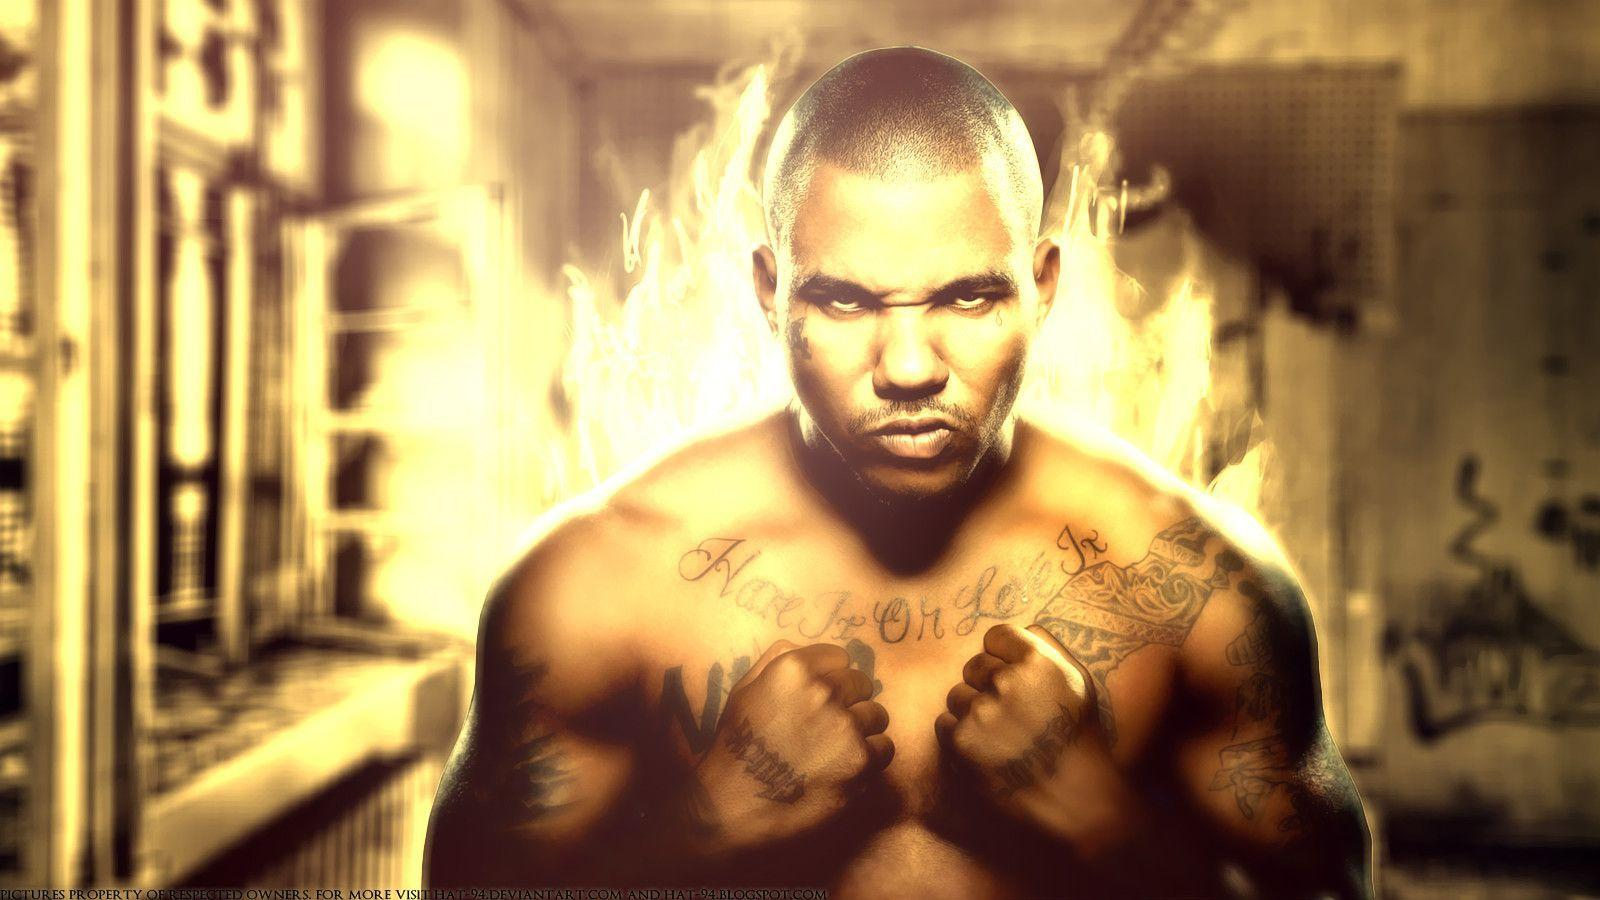 The Game Wallpapers Rapper 1600x900